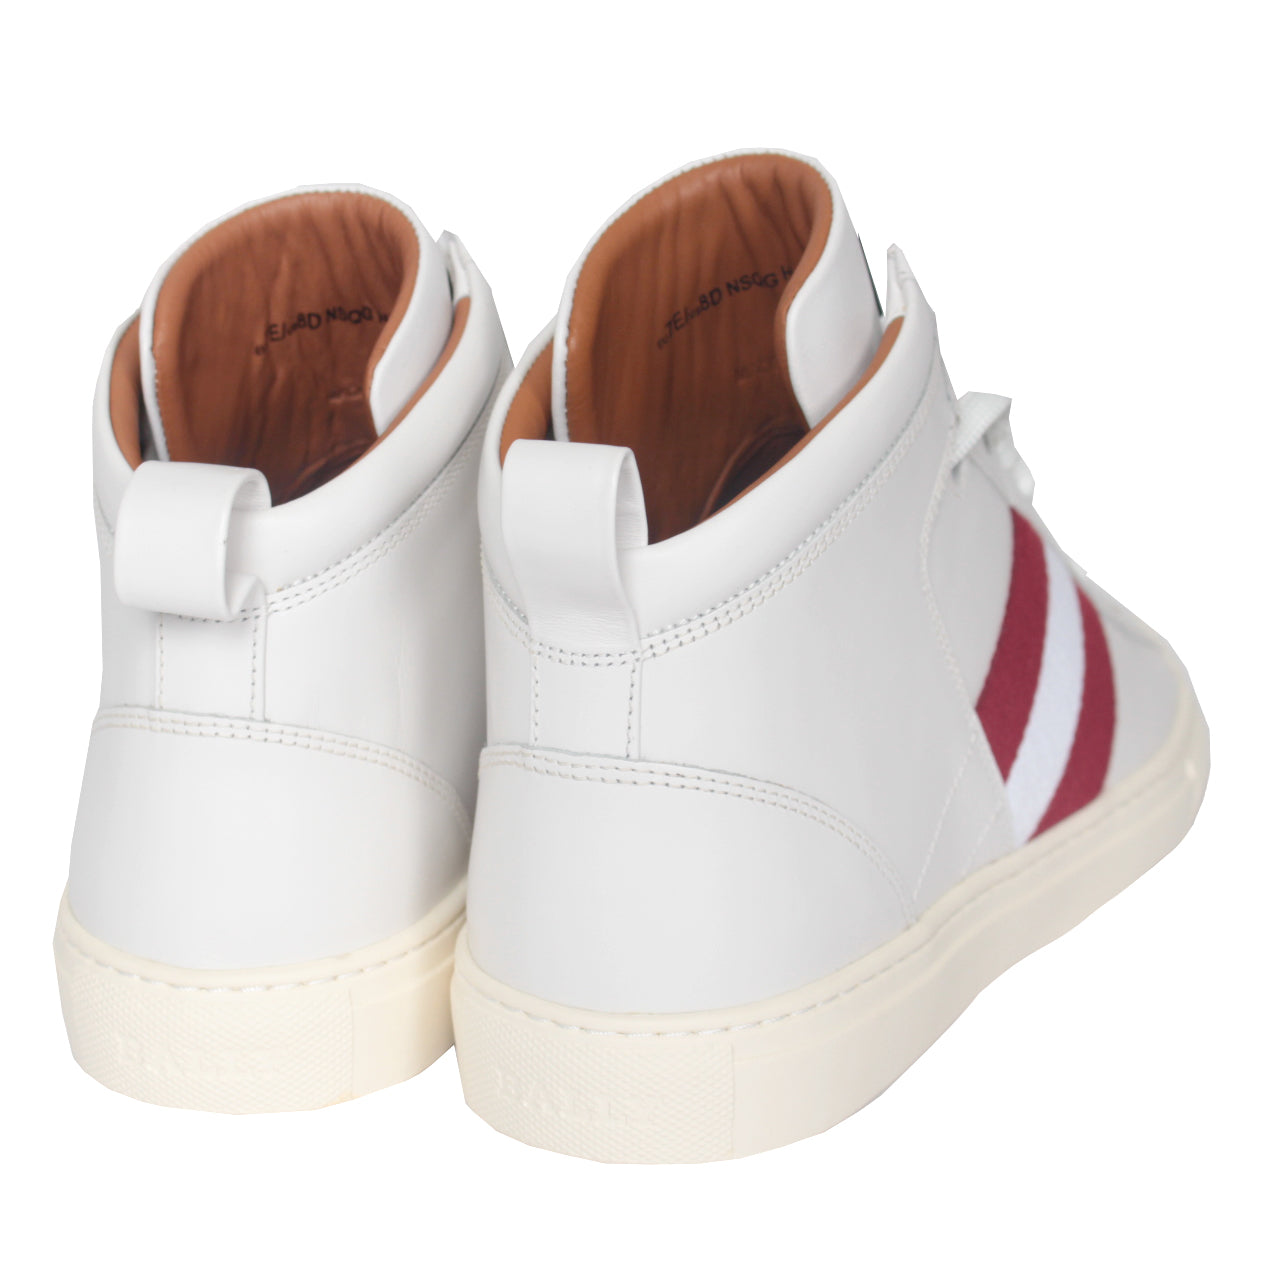 Hedern High Top Sneakers| White